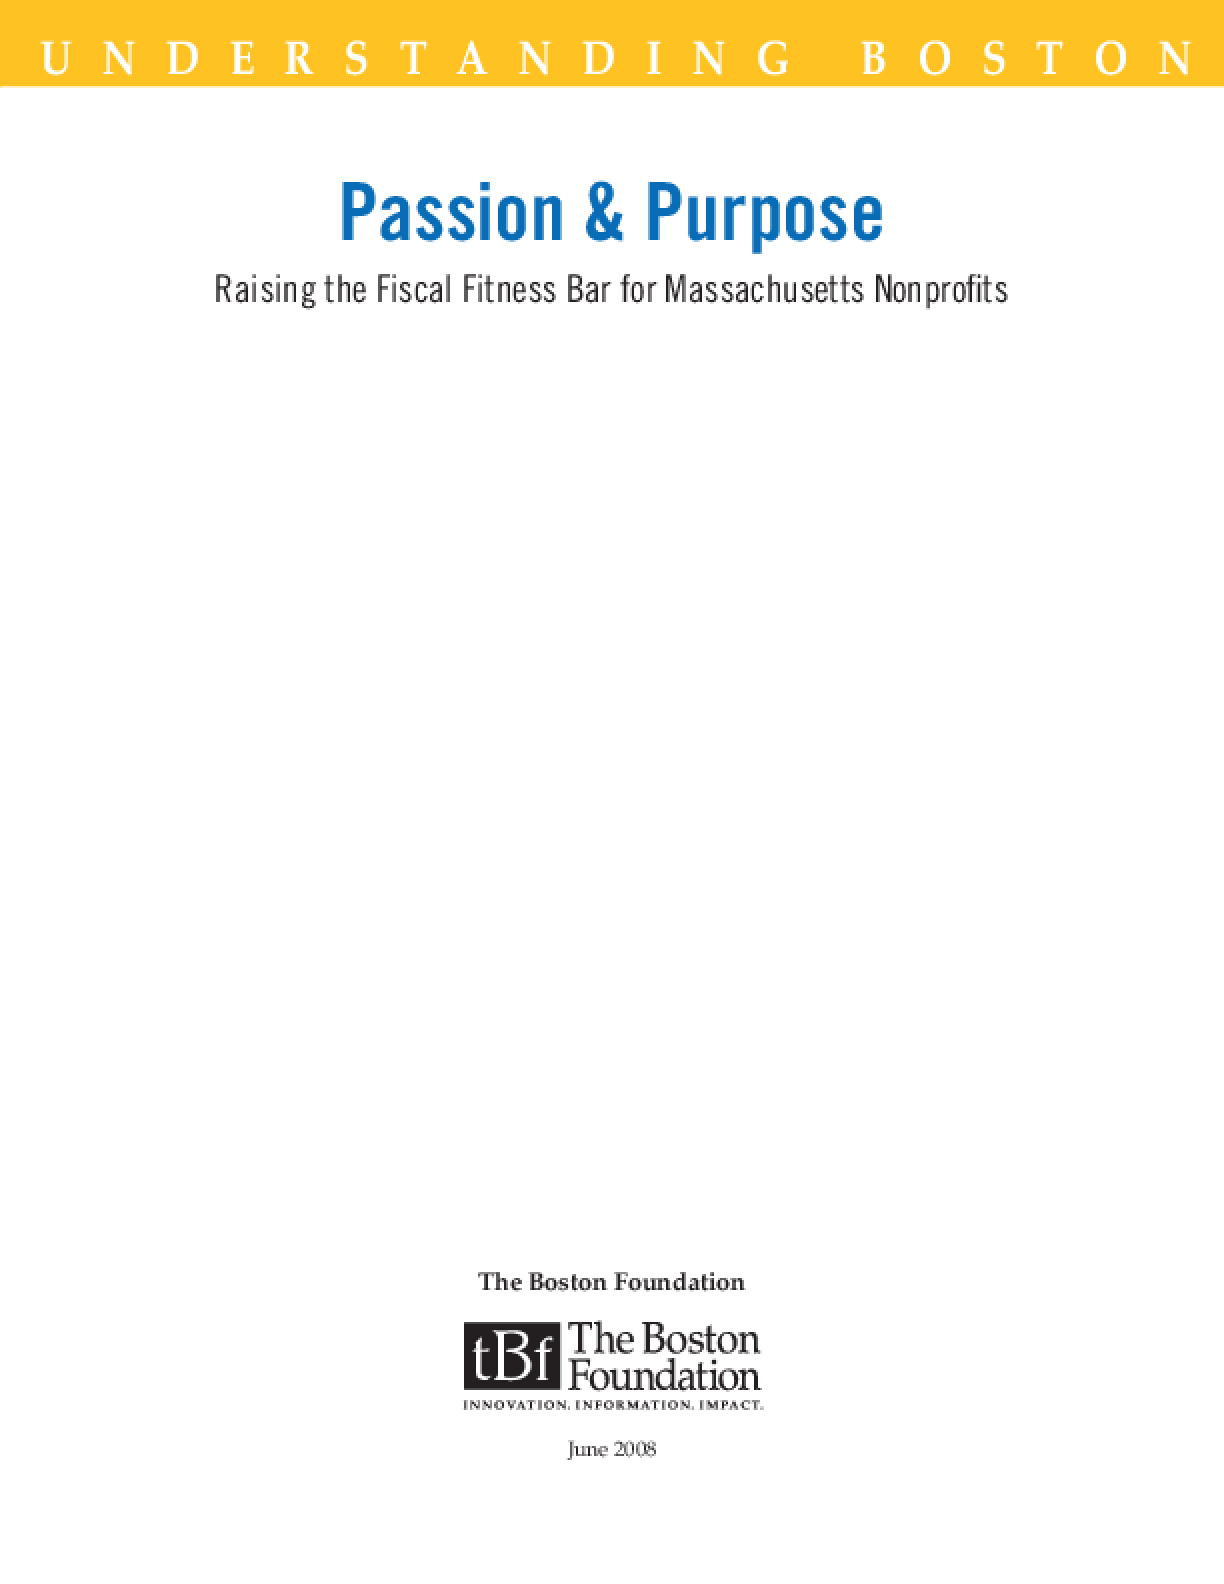 Passion & Purpose: Raising the Fiscal Fitness Bar for Massachusetts Nonprofits